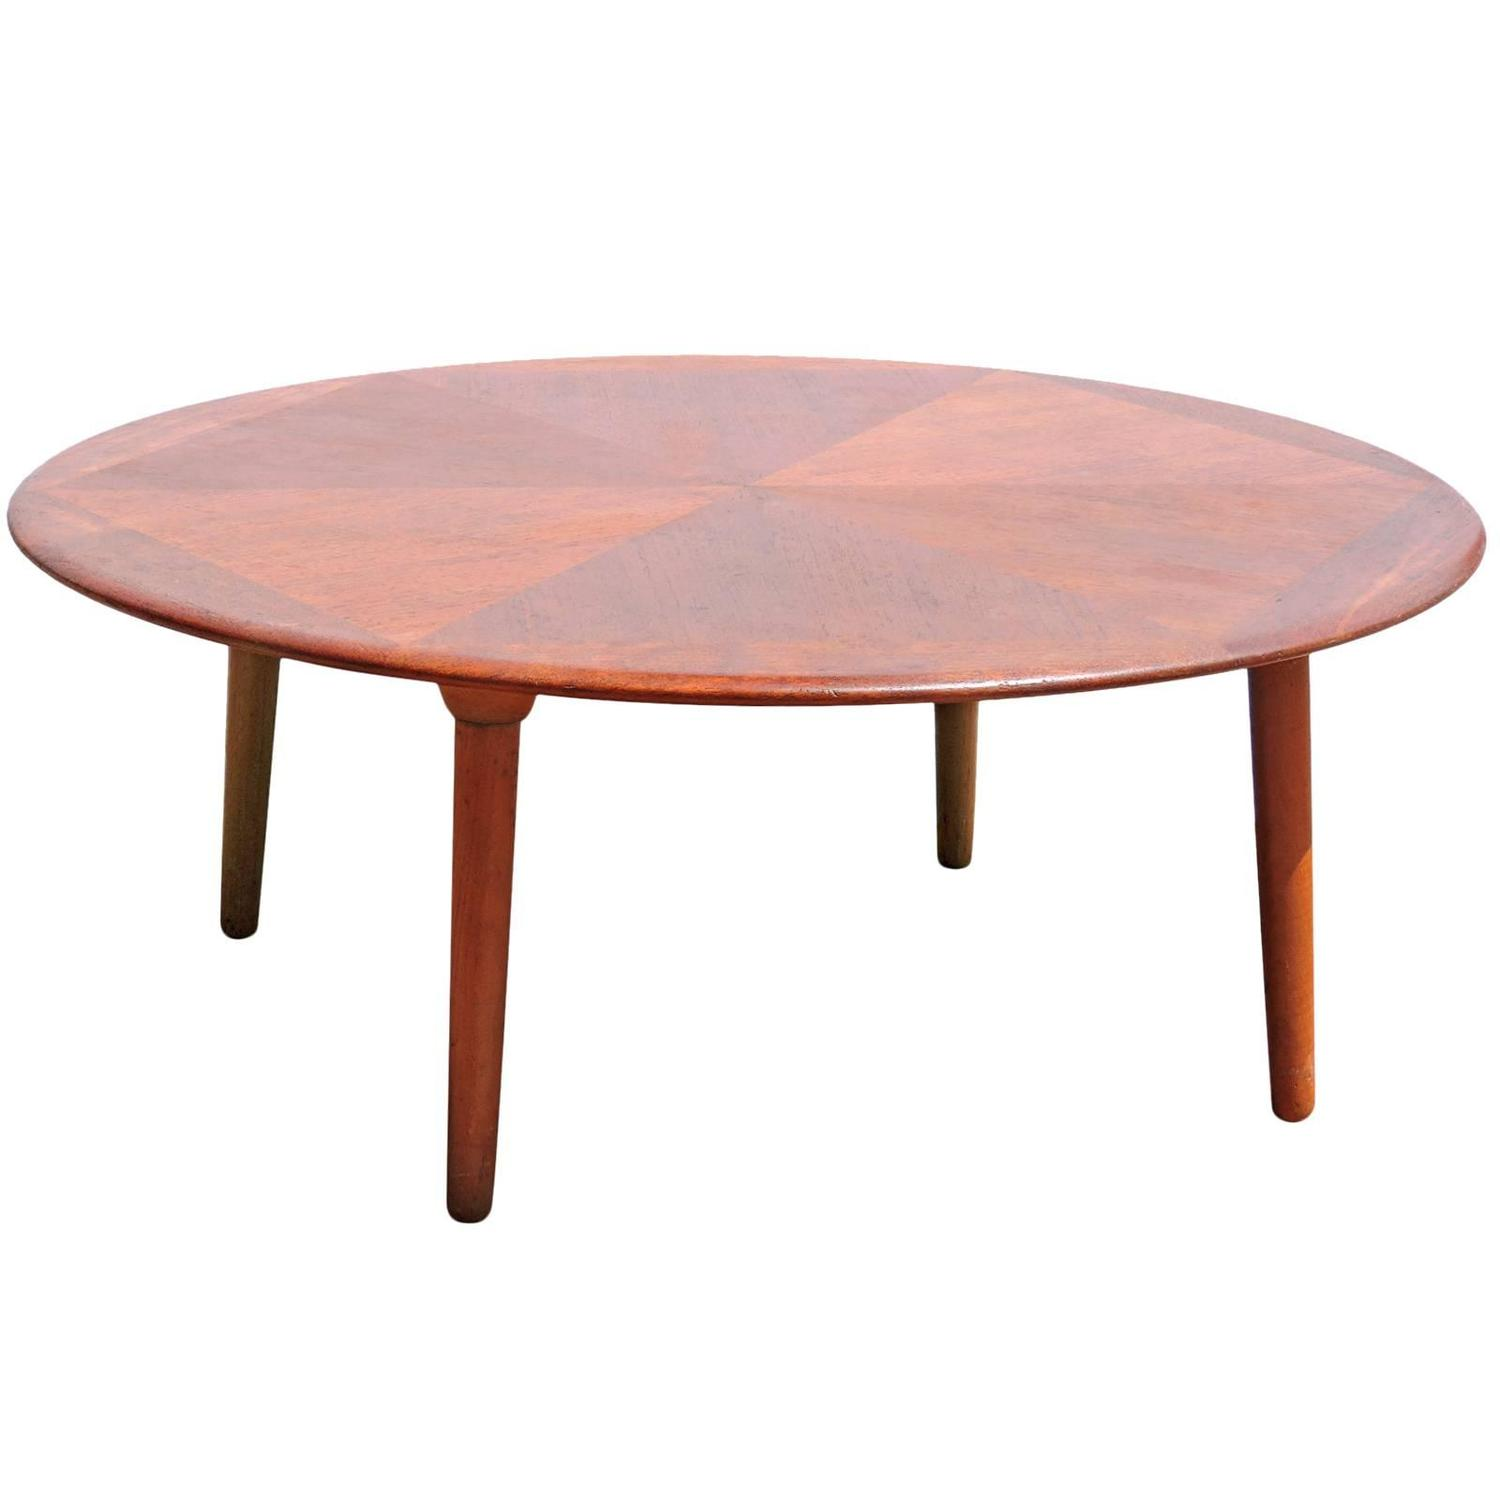 Teak Oil Coffee Table: Teak Diamond Design Round Coffee Table By H. W. Klein For